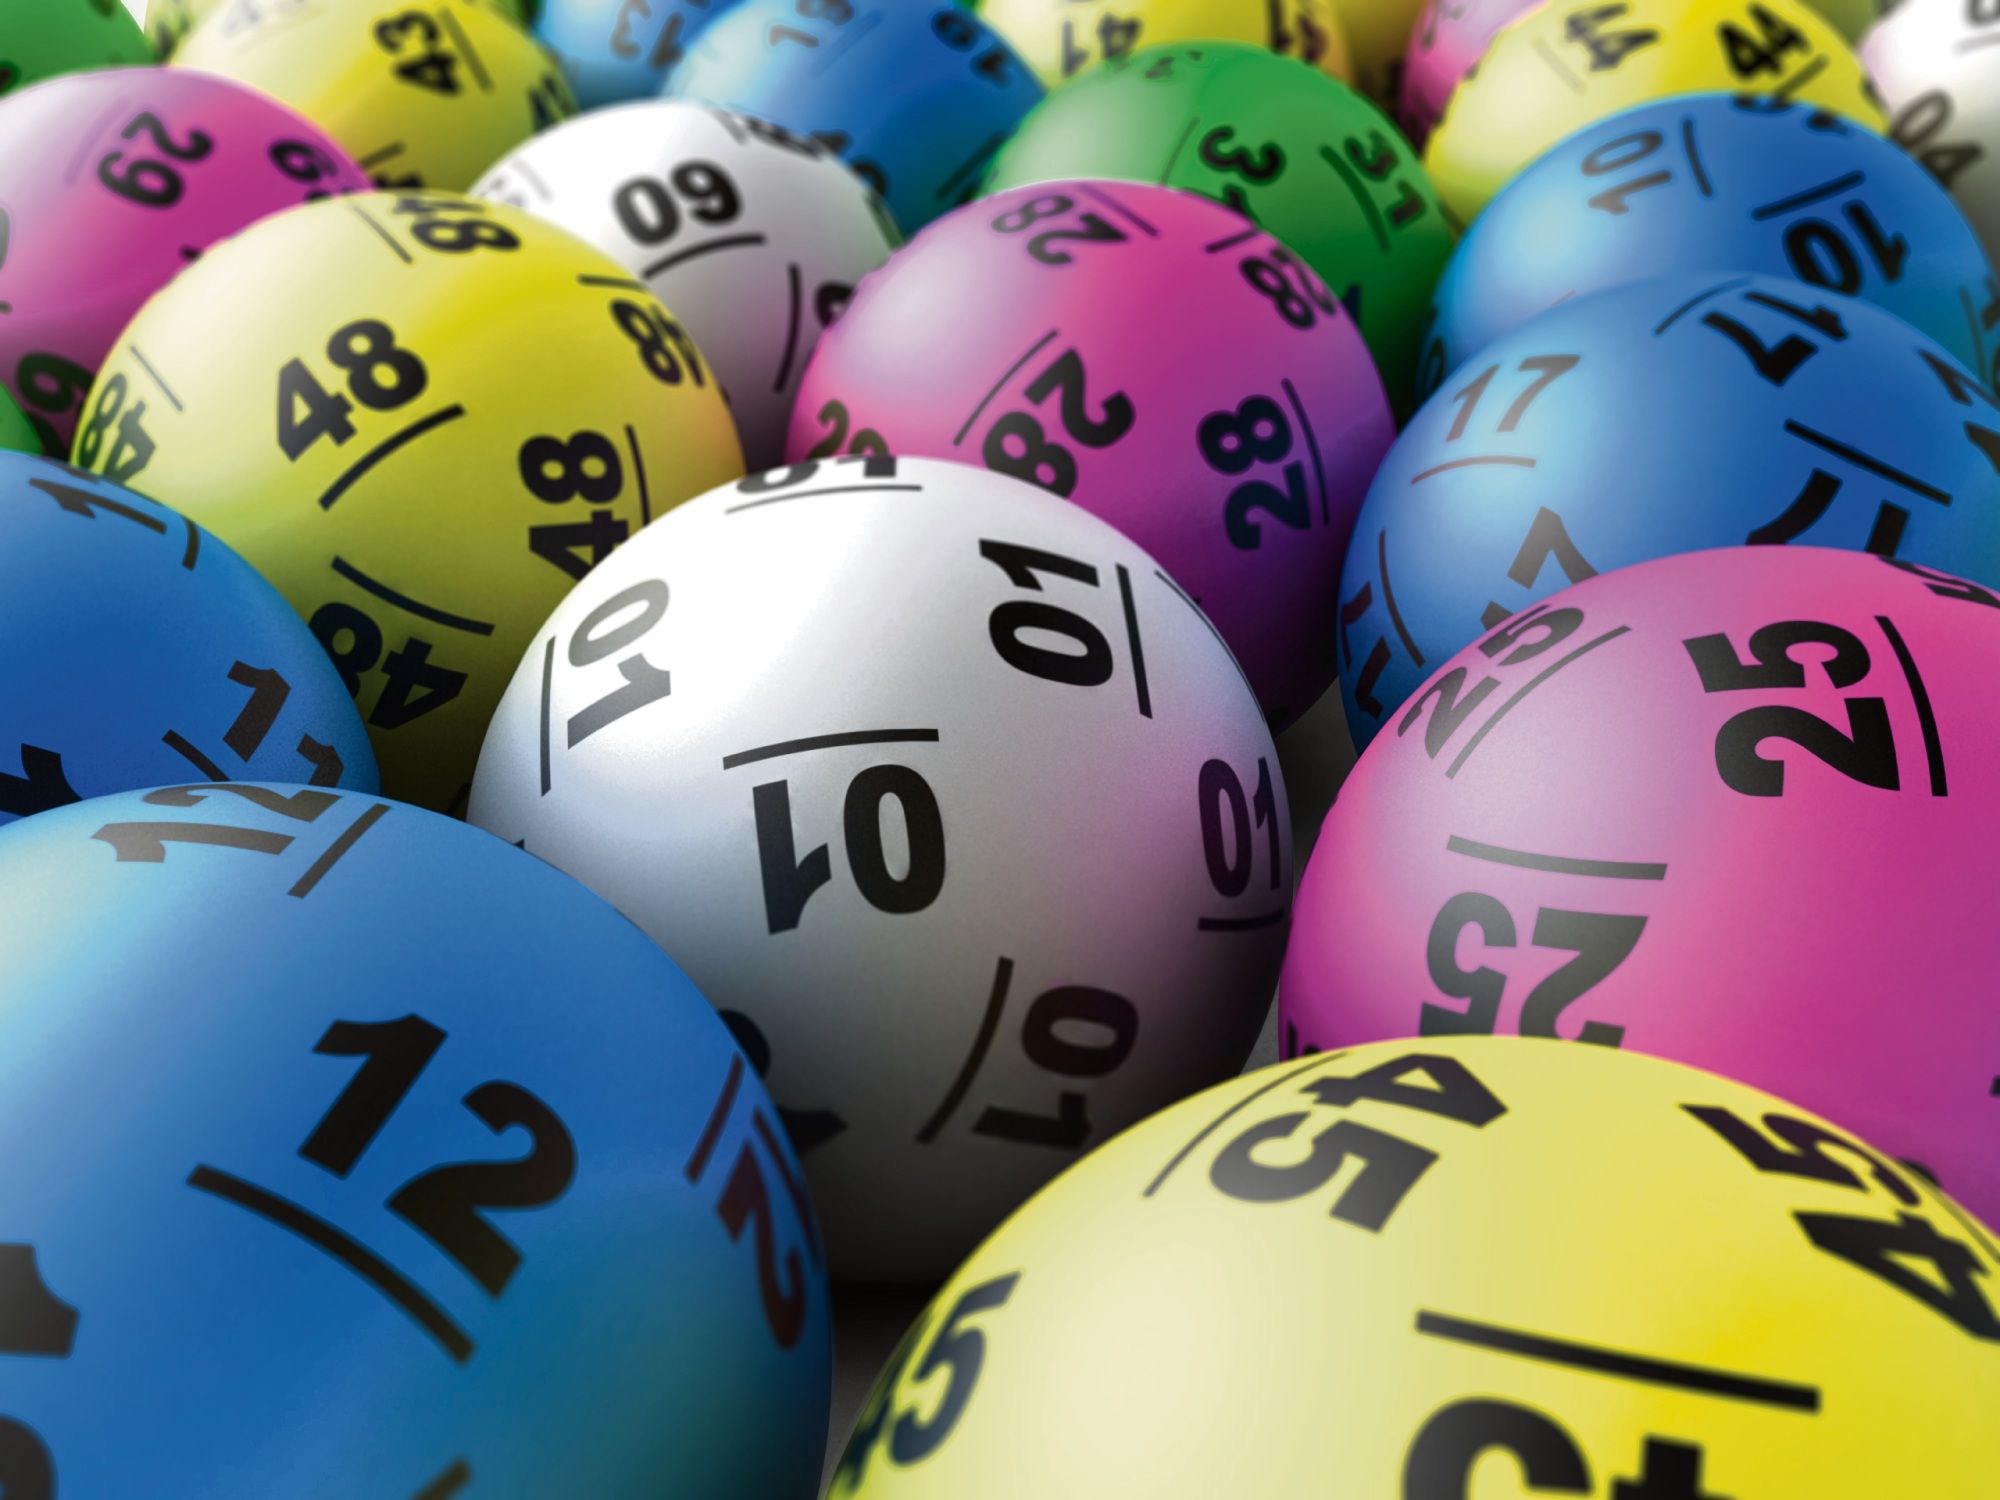 Tonight's Powerball jackpot has hit $100 million,